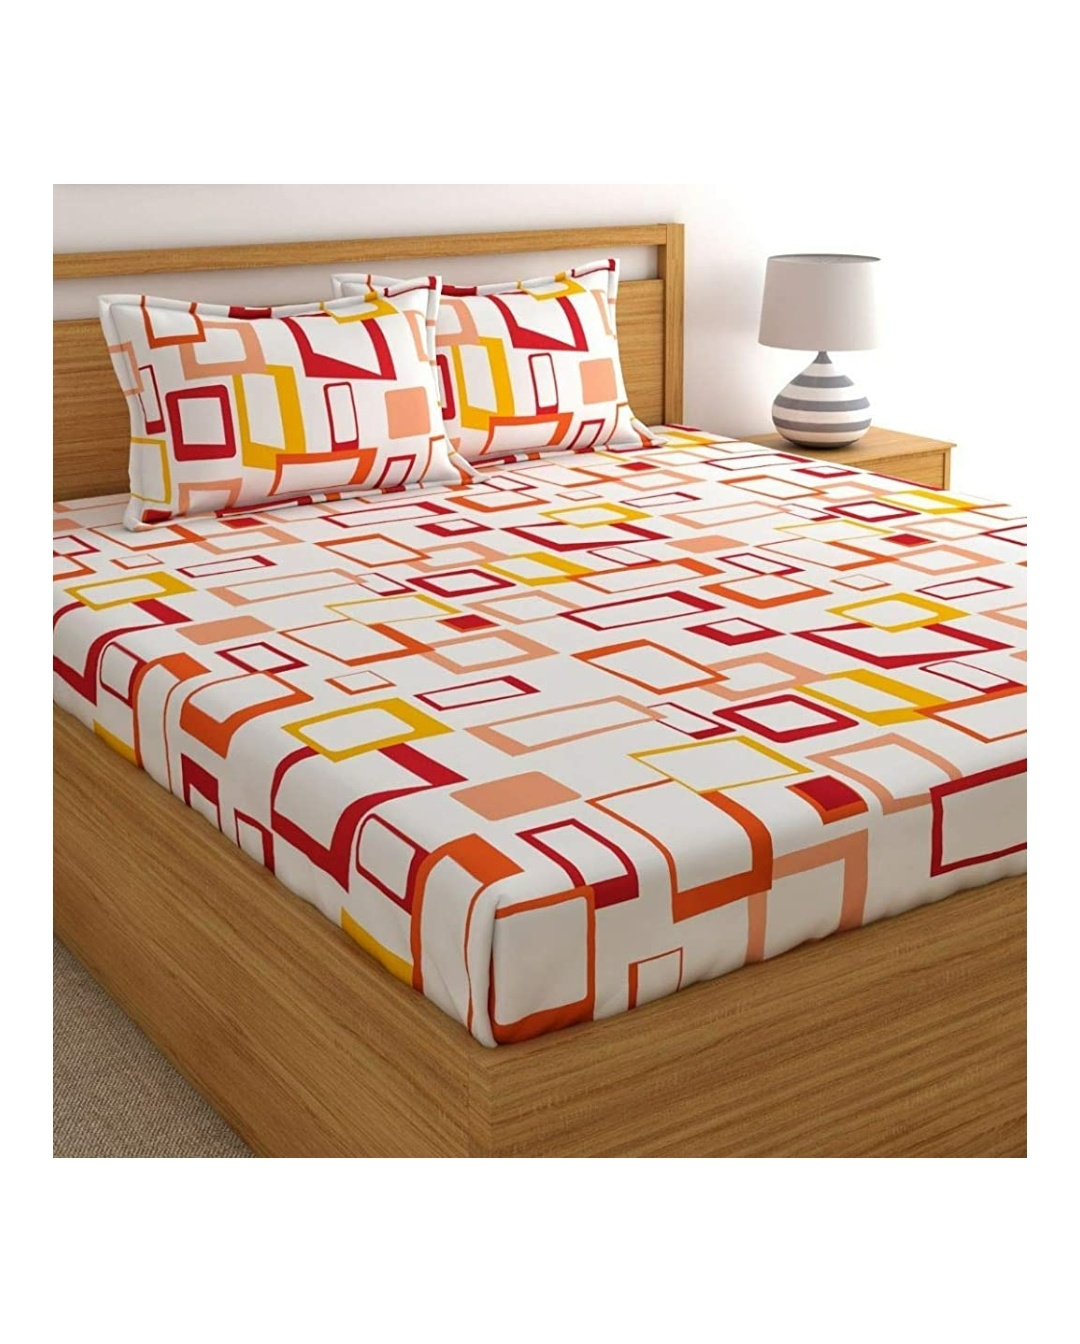 100% Cotton Double bedsheets with 2 Pillow Covers Cotton, 140tc Geometric Multicolour bedsheets for Double Bed Cotton (7.3ft x 7.7ft)